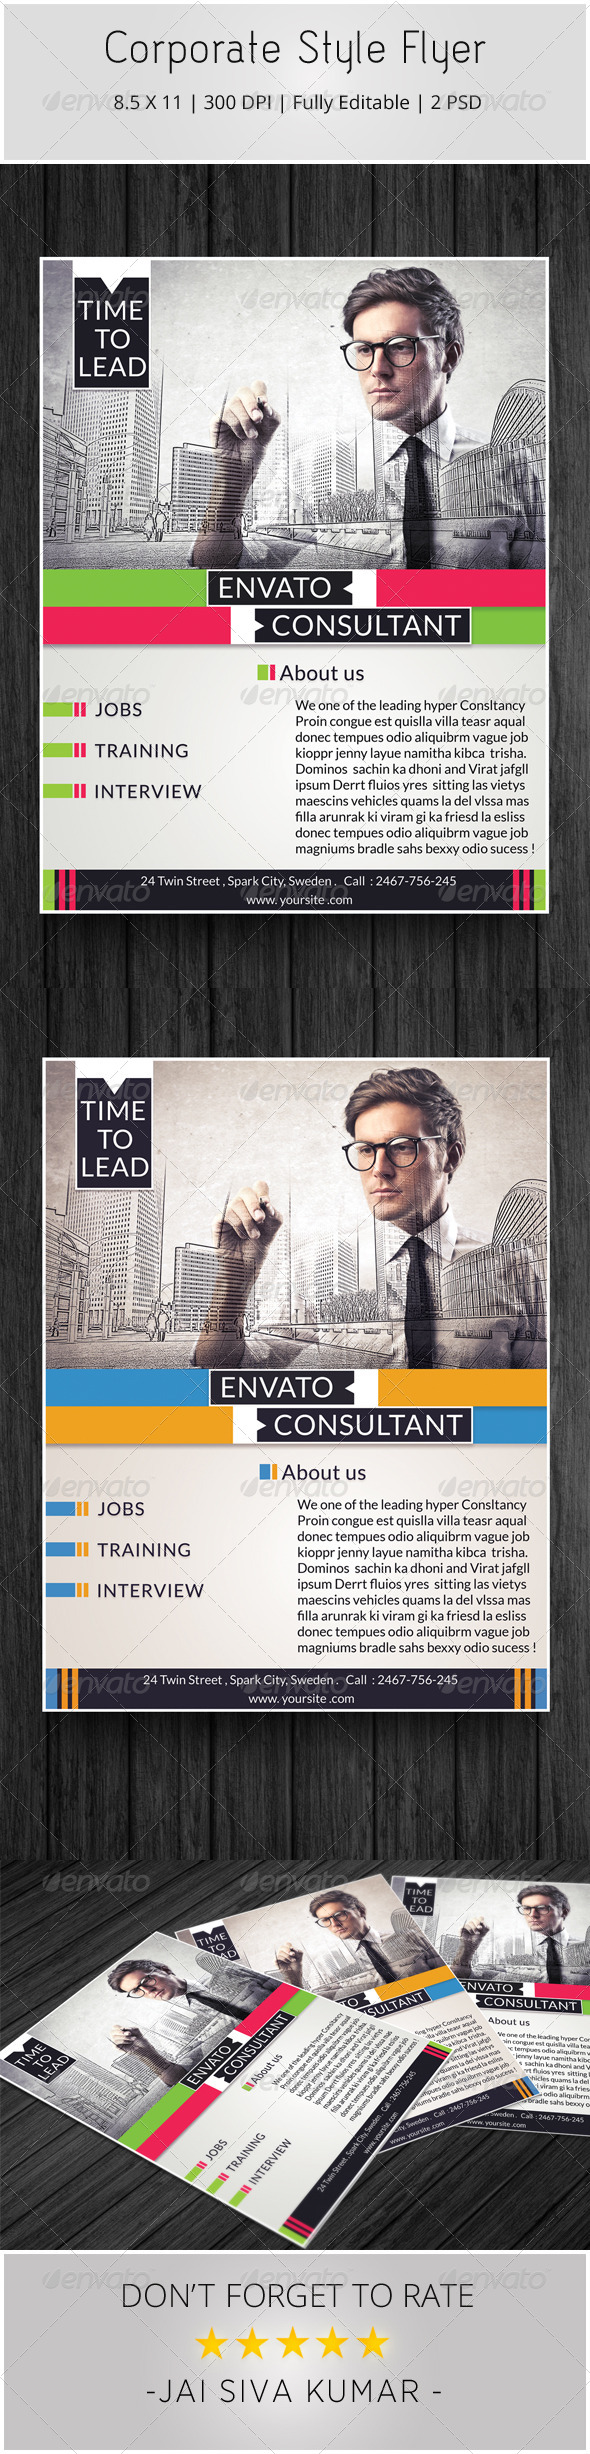 Corporate Style Flyer - Corporate Flyers